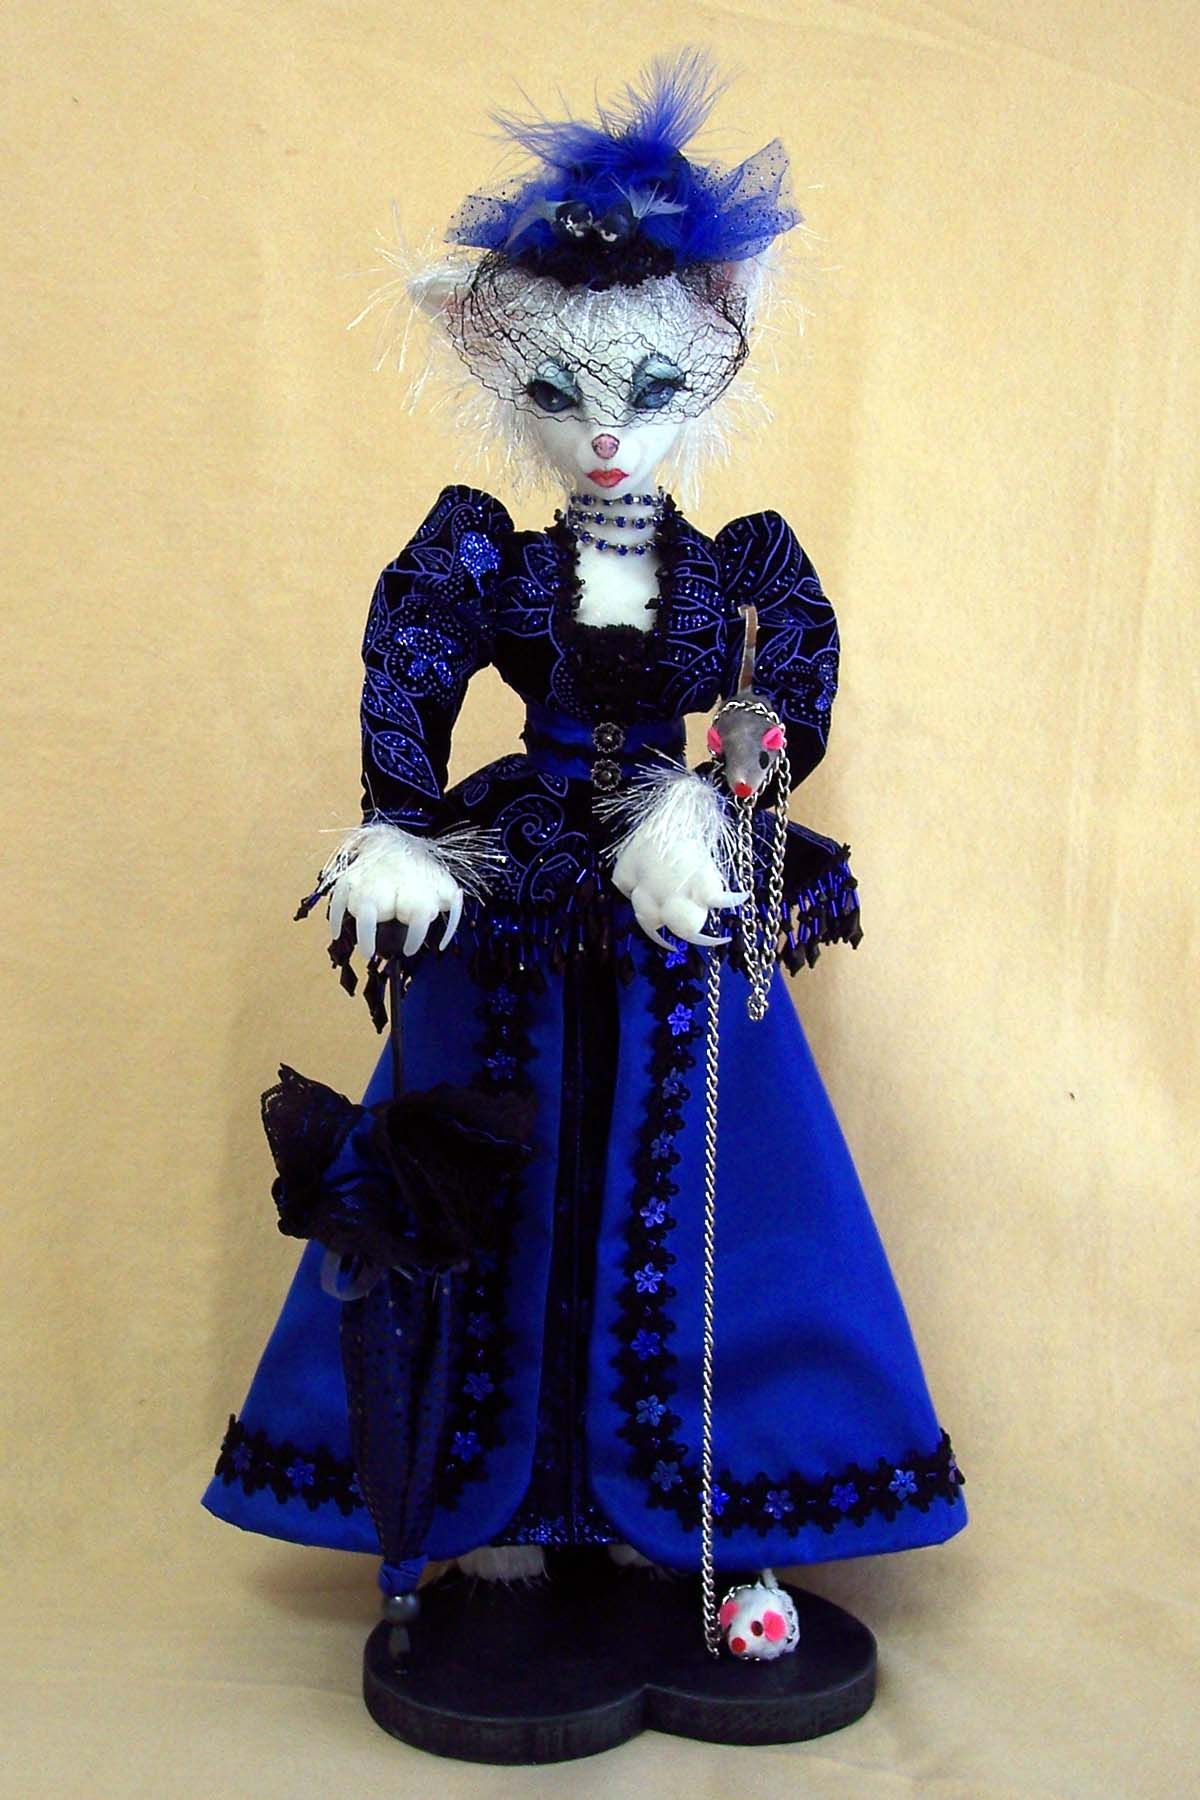 Catiana, white cat dressed in blue (the jacket fabric was